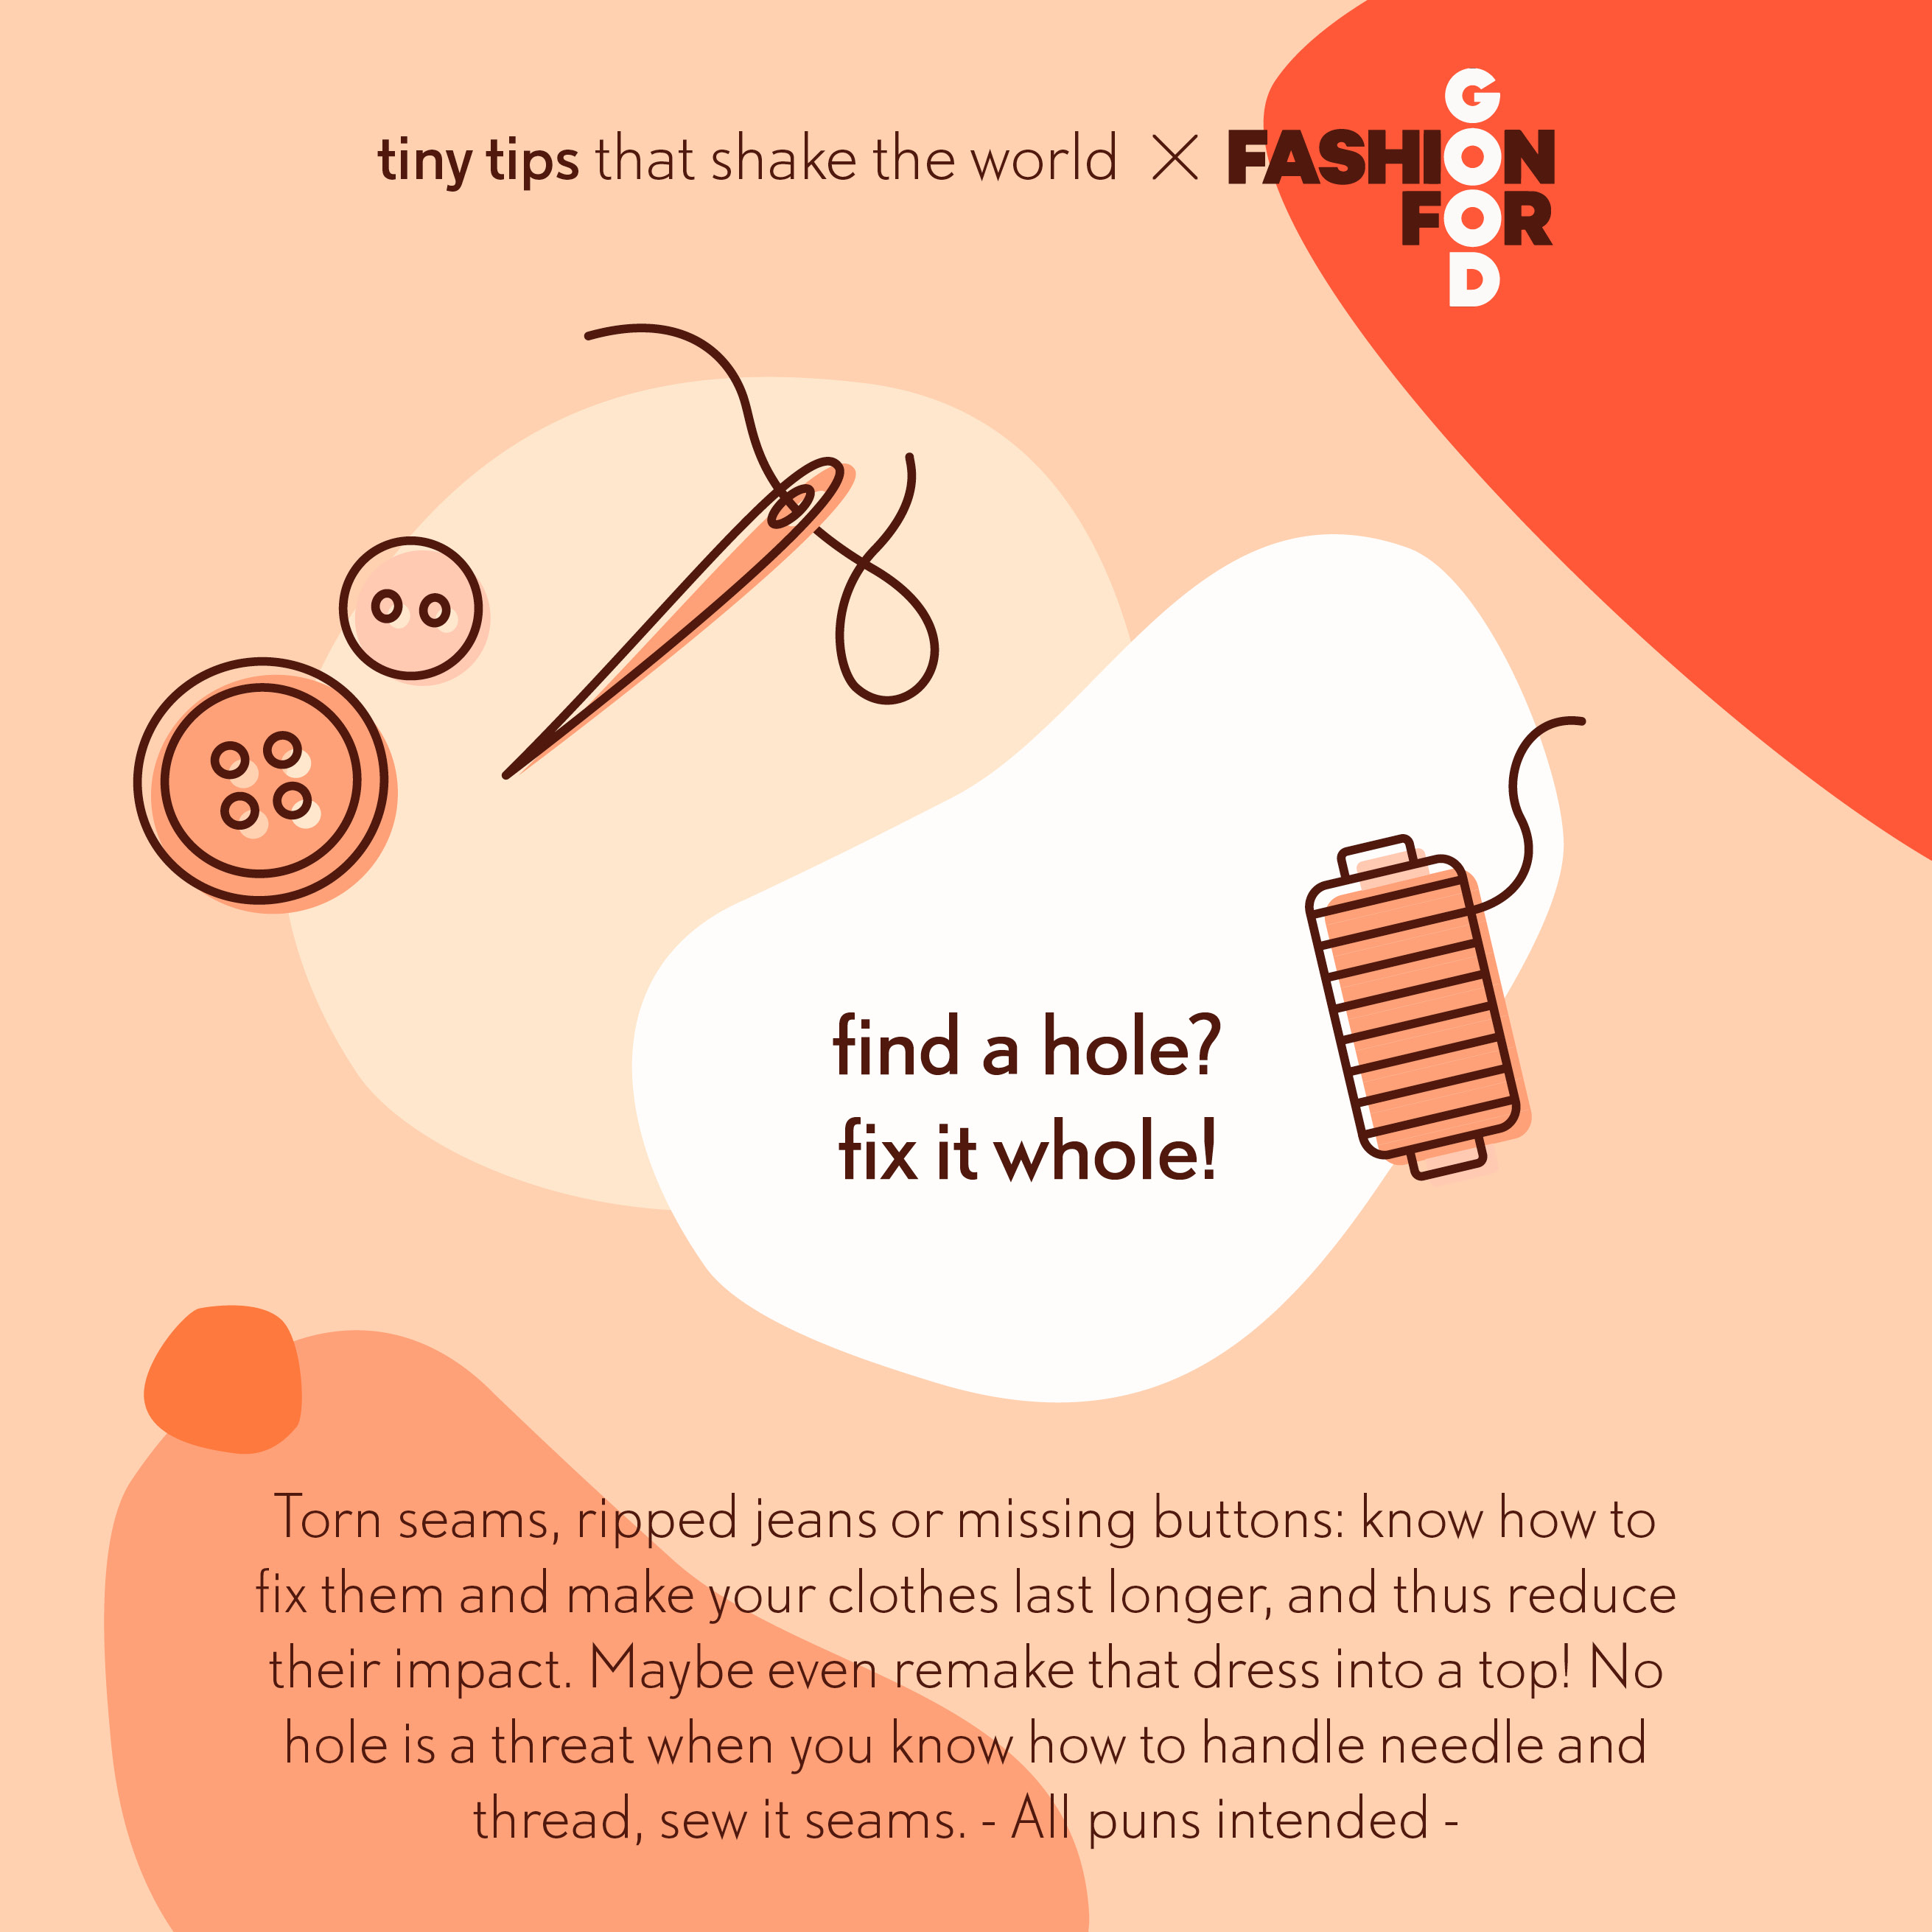 Tiny tips that shake the world X Fashion for Good - Find a hole fix it whole